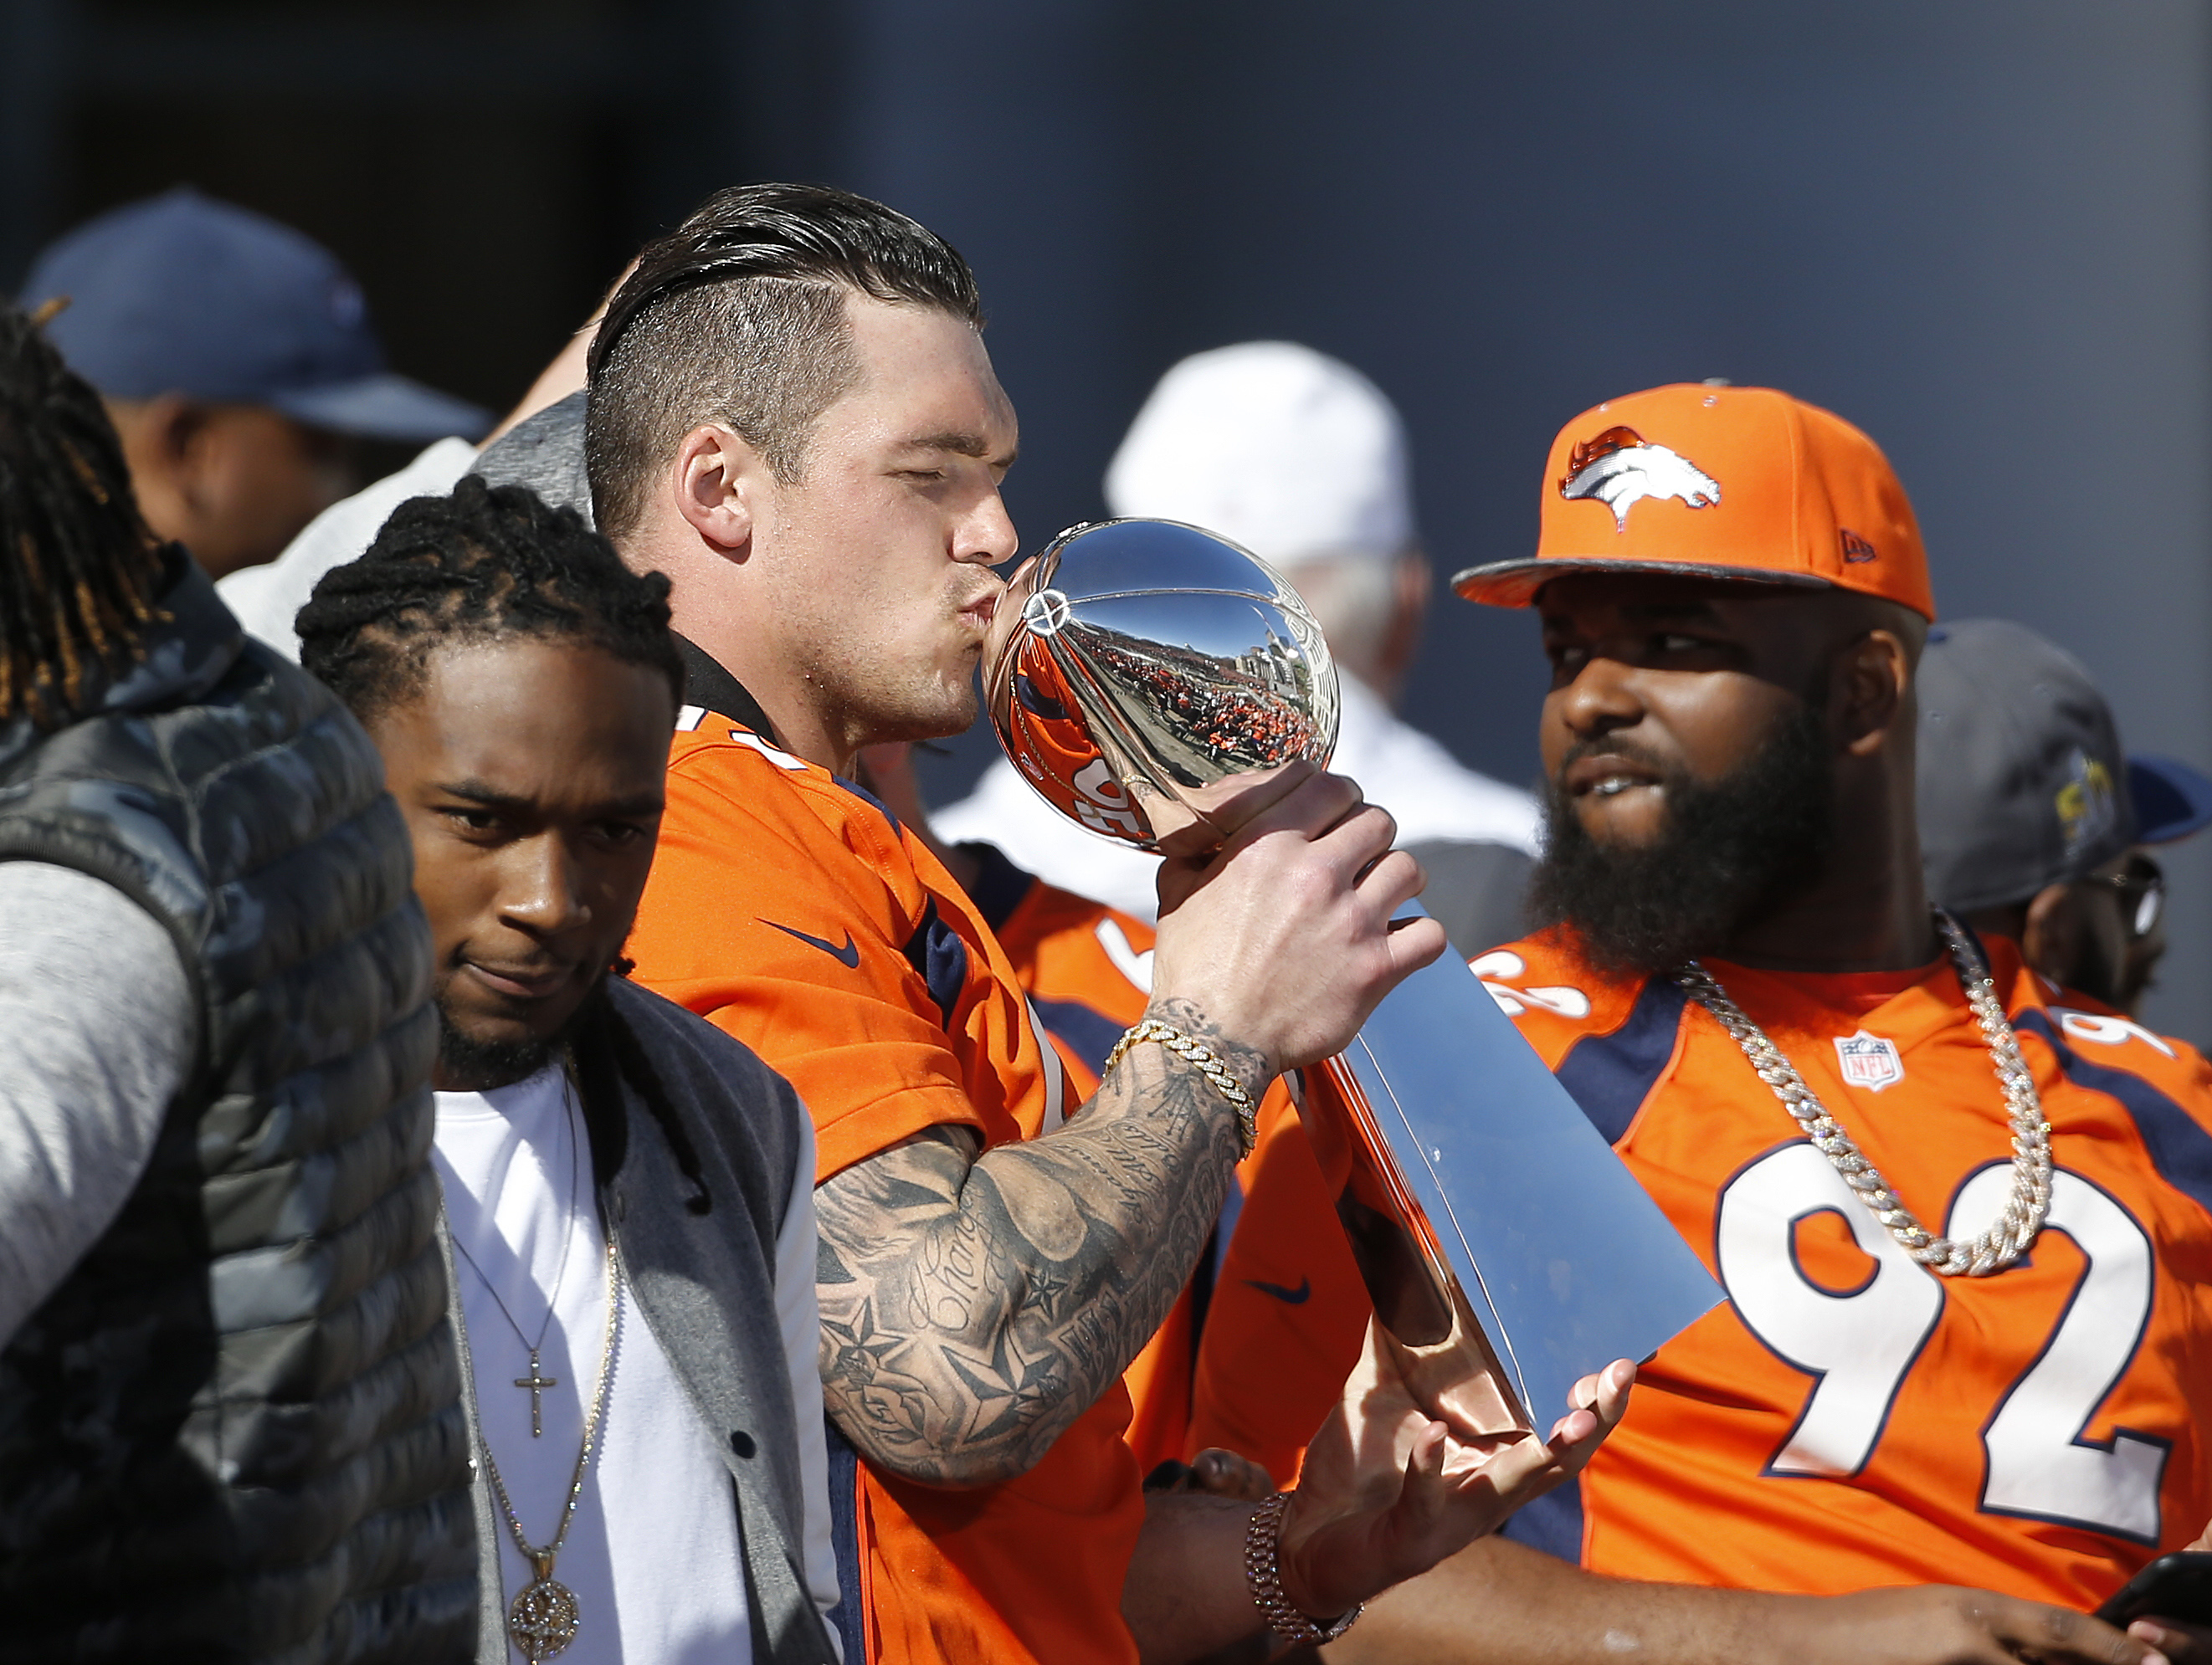 Photo: Broncos parade 12 | Wolfe kisses trophy